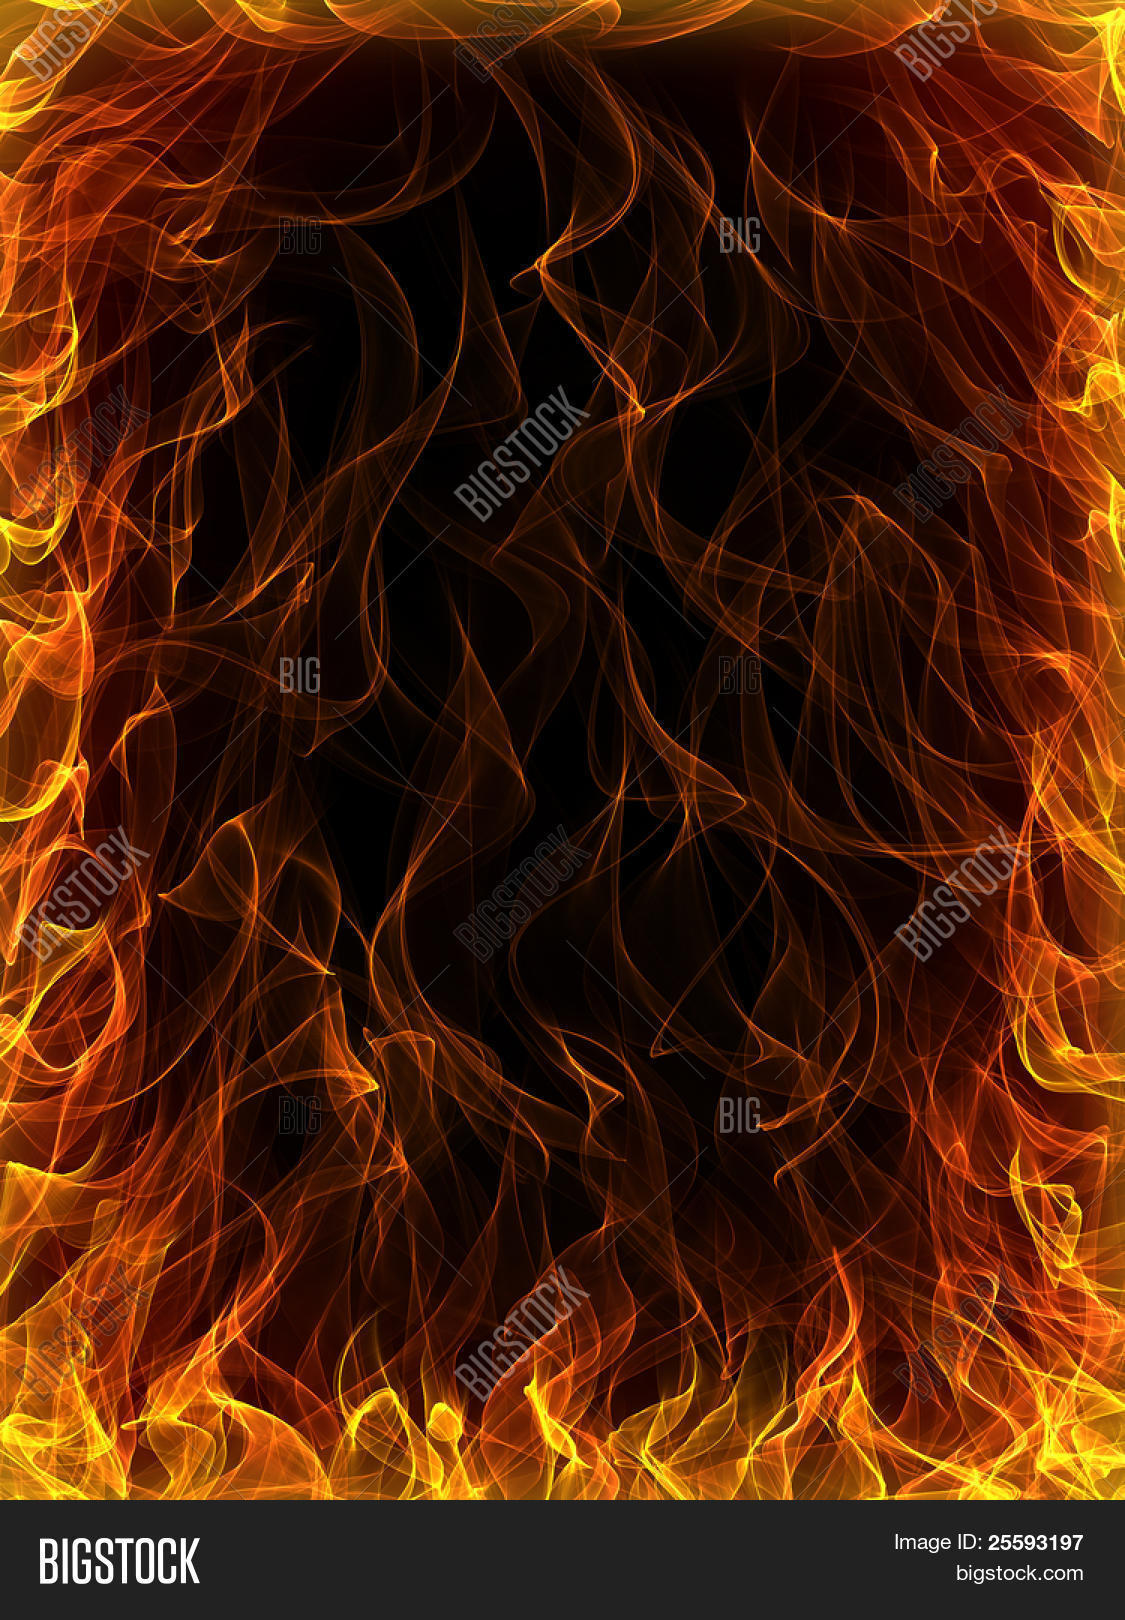 Fire Flames Background Image Photo Free Trial Bigstock